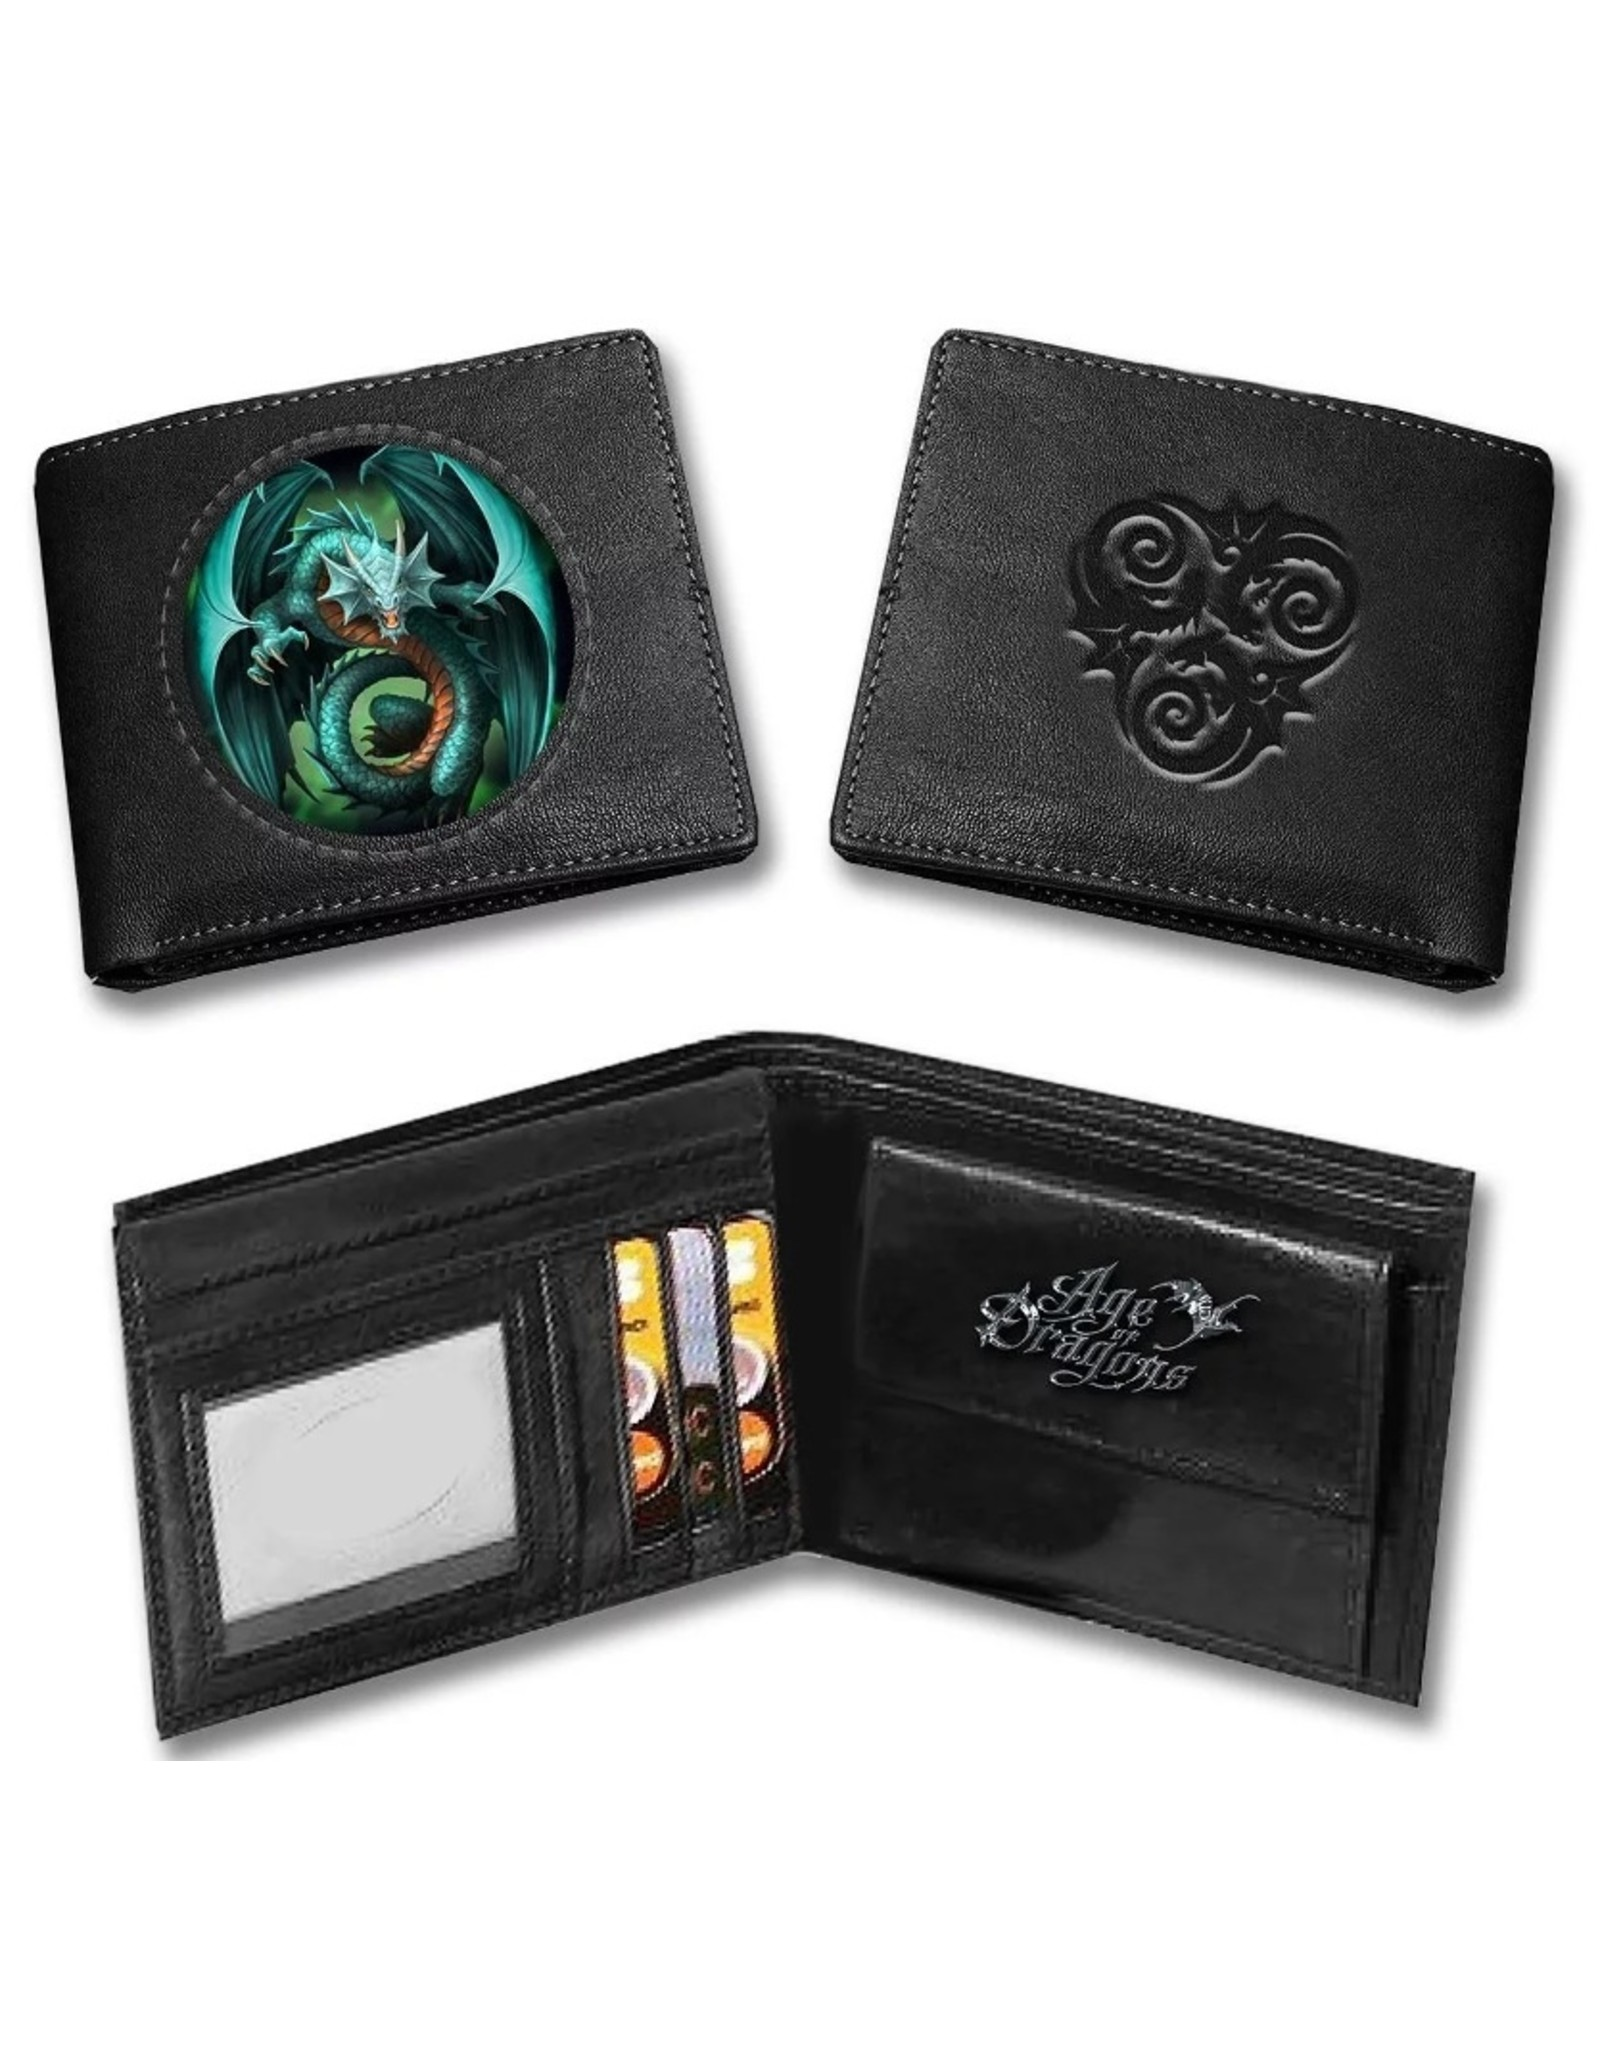 Anne Stokes Fantasy bags and wallets - Anne Stokes 3D lenticular wallet Fire Dragon (Age of Dragons)